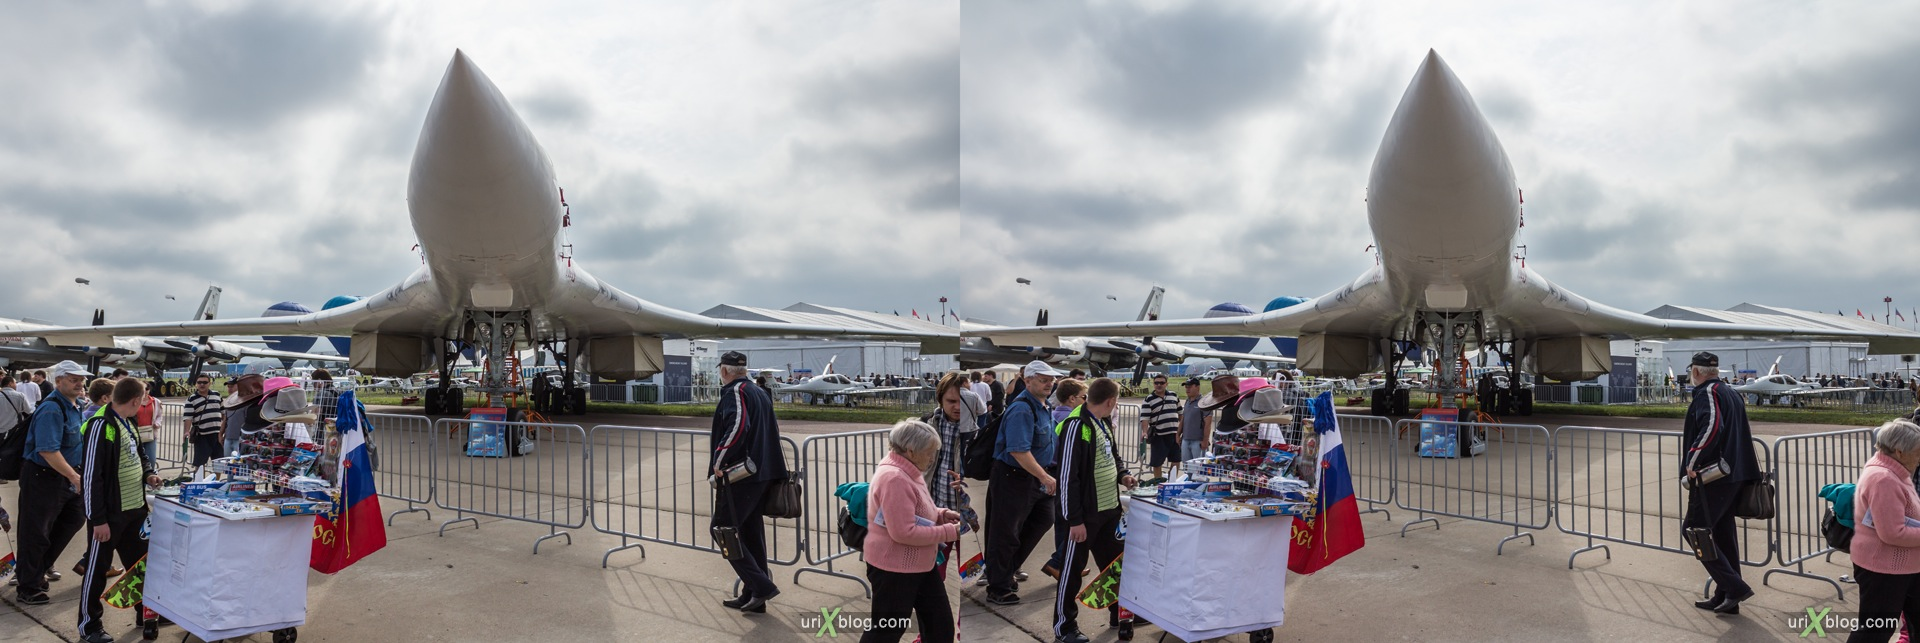 2013, Tu-160, MAKS, International Aviation and Space Salon, Russia, Soviet, USSR, Ramenskoye airfield, airplane, 3D, stereo pair, cross-eyed, crossview, cross view stereo pair, stereoscopic